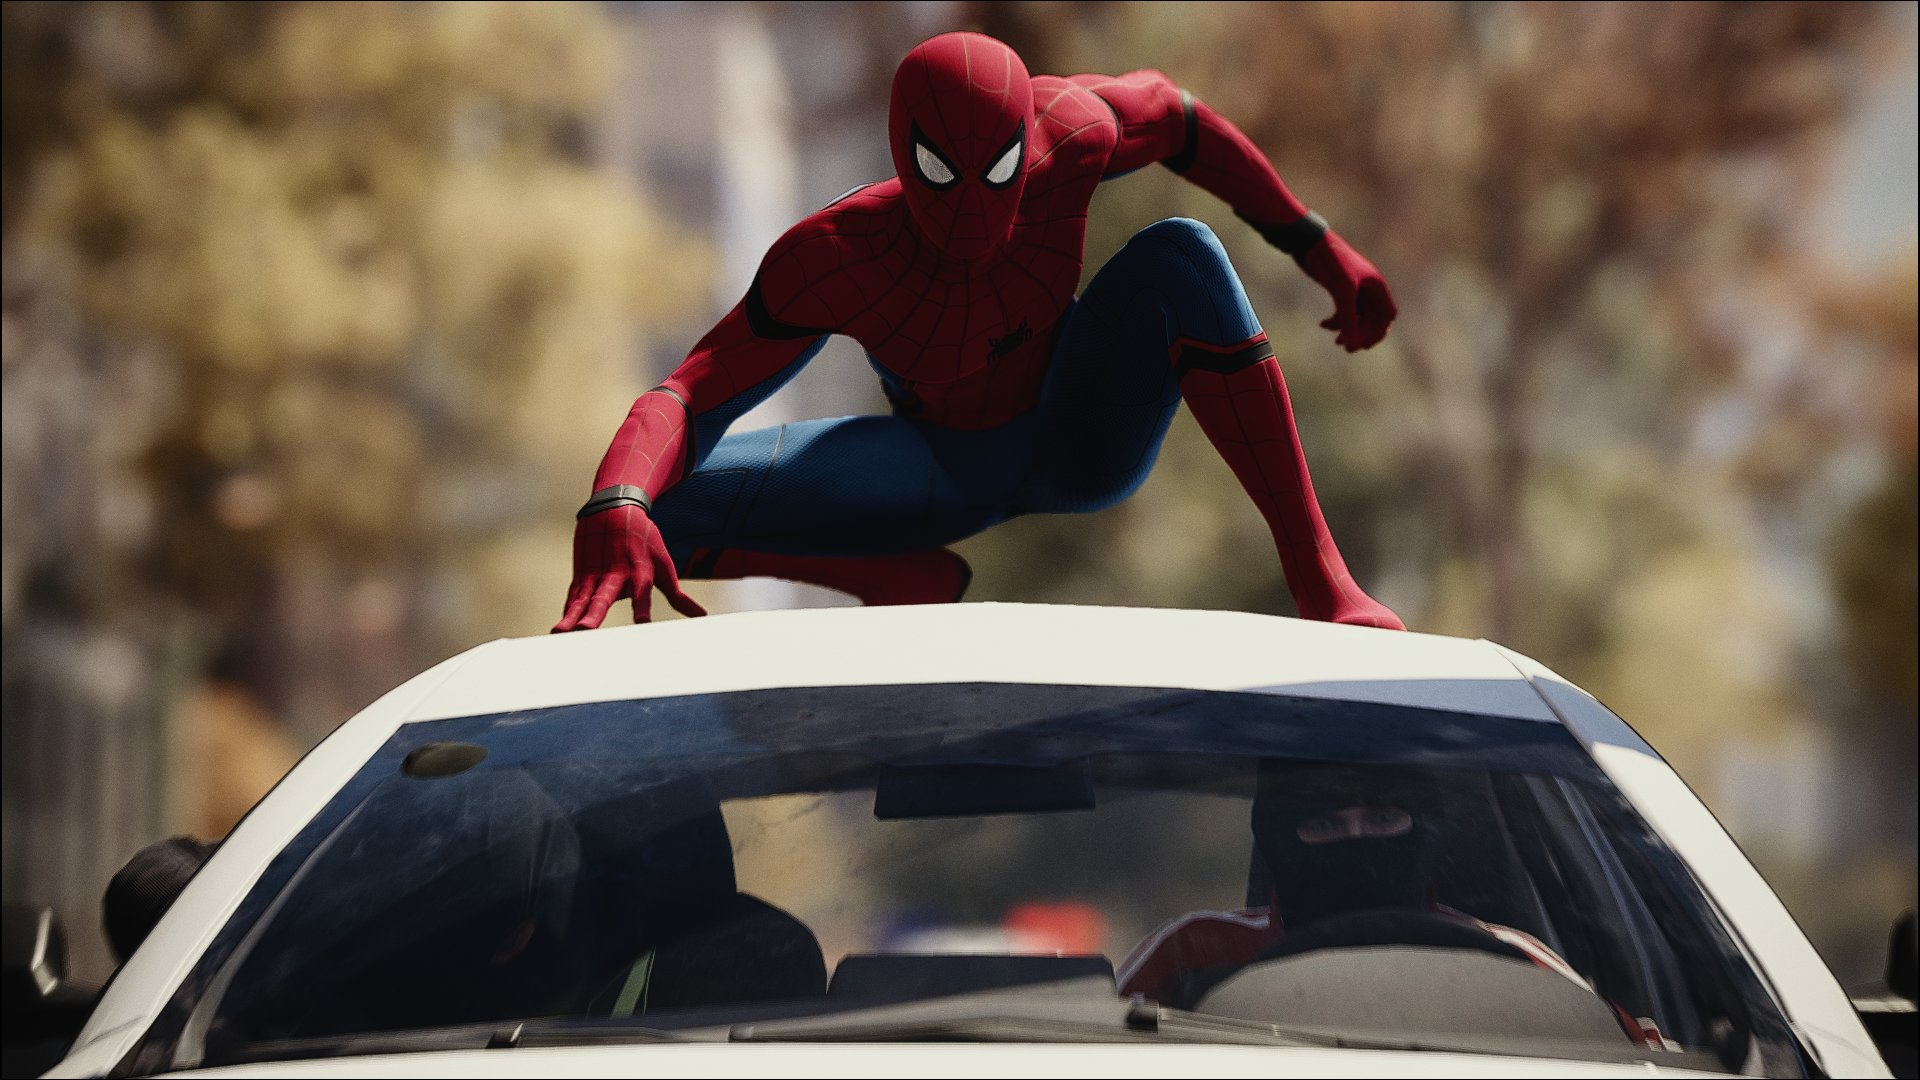 Spider-Man on Car